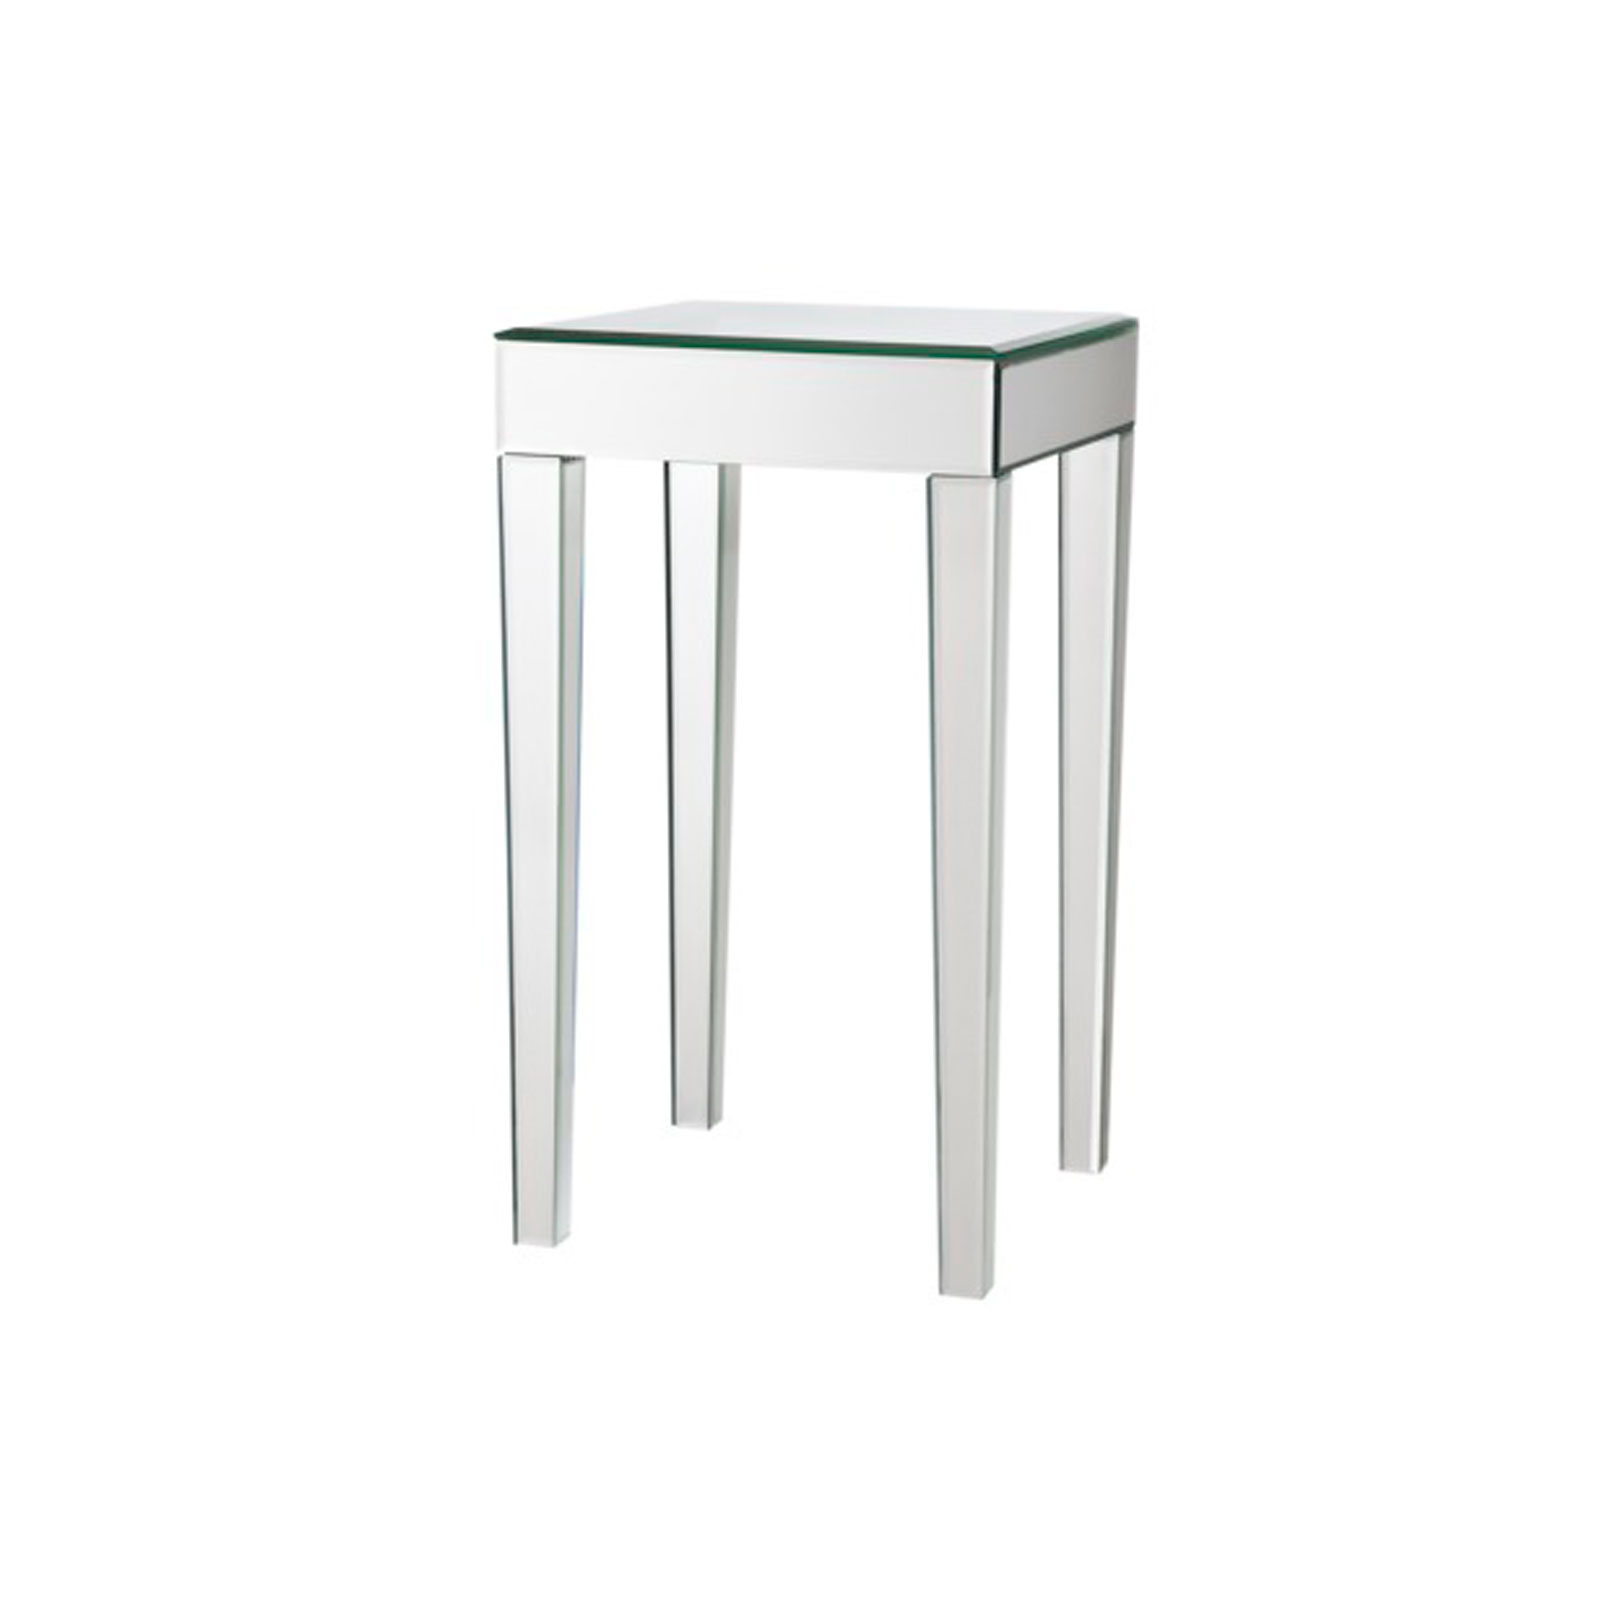 side tables for rent event furniture rentals formdecor venetian table outdoor tall winsome nightstand espresso threshold floor lamp grey placemats dinette and patio edmonton home